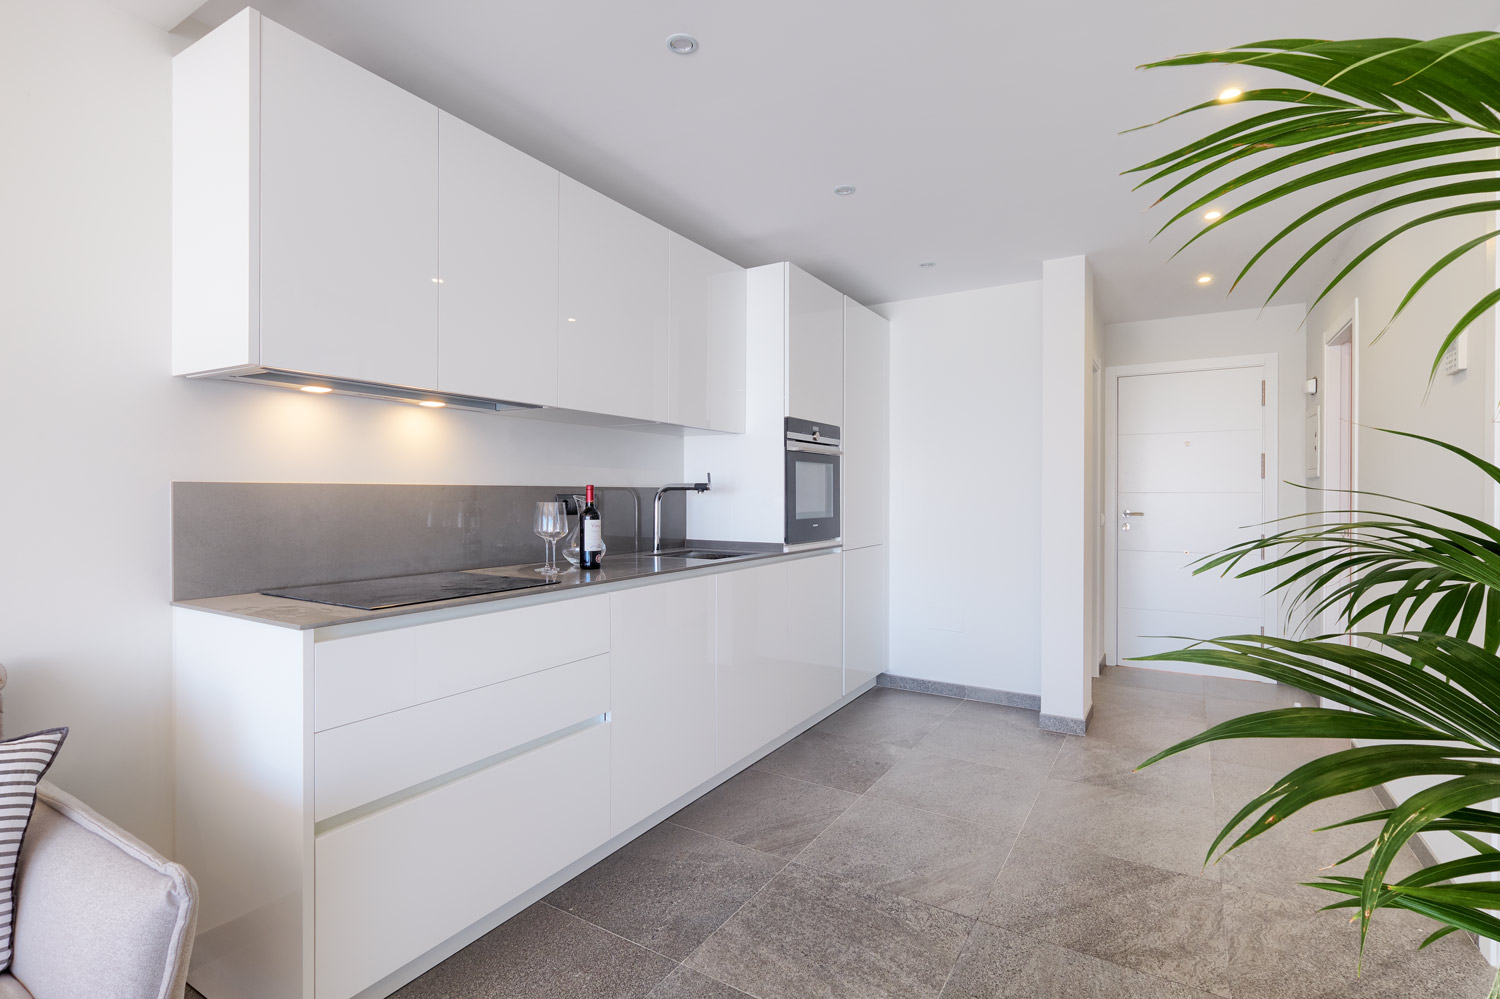 Greenlife-estates-frontline-penthouse-marbella-east-kitchen2